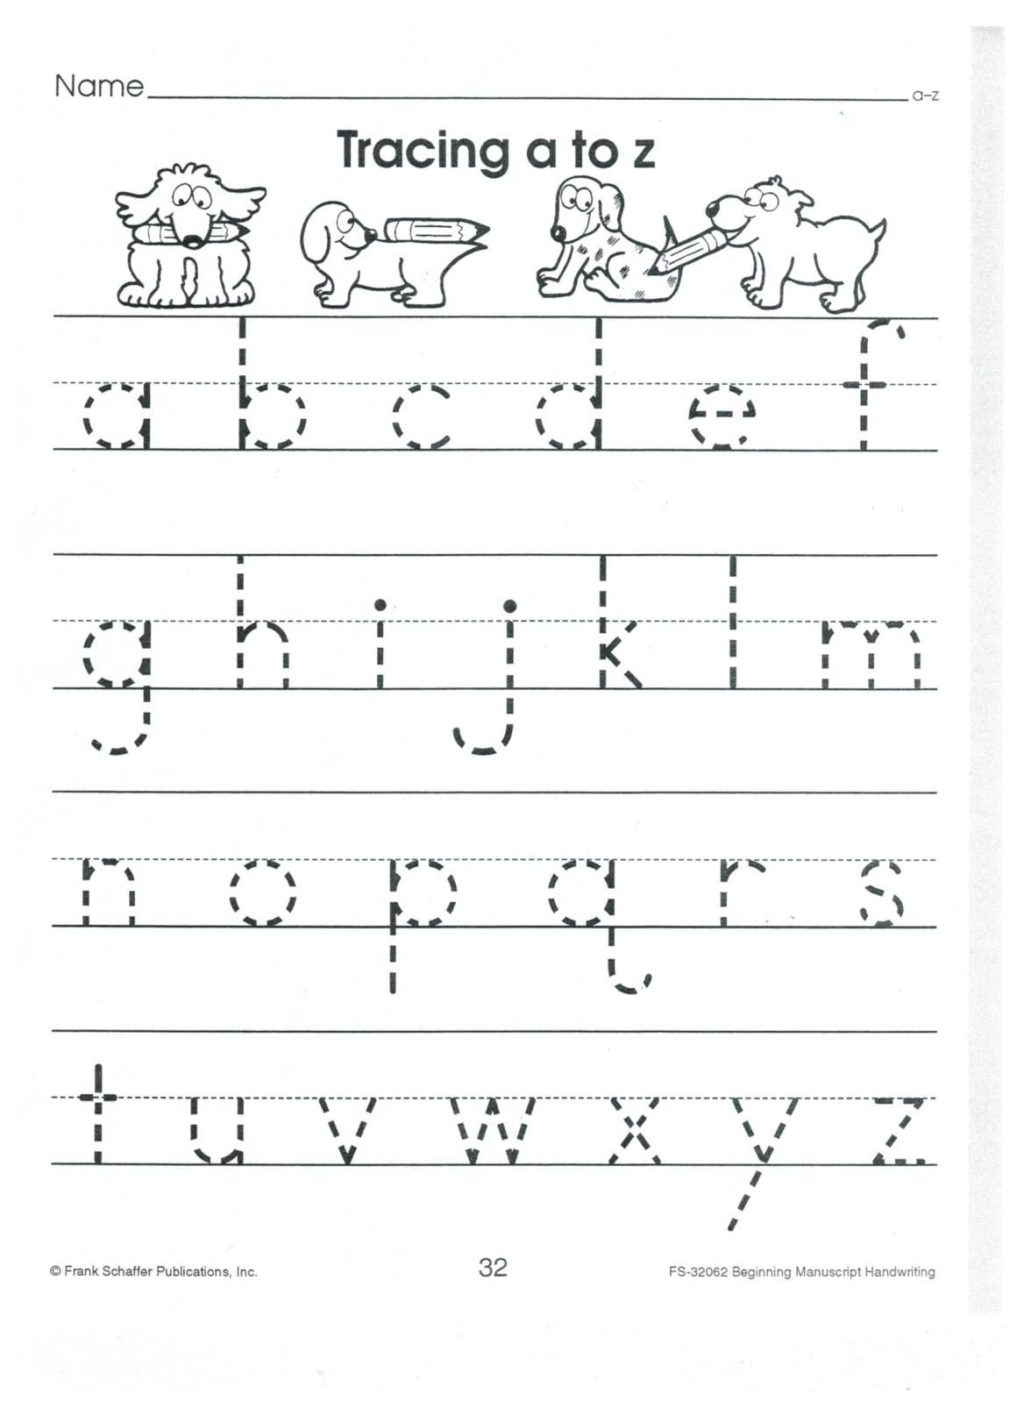 Worksheet ~ English Print To Z Lower Case Alphabet Tracing